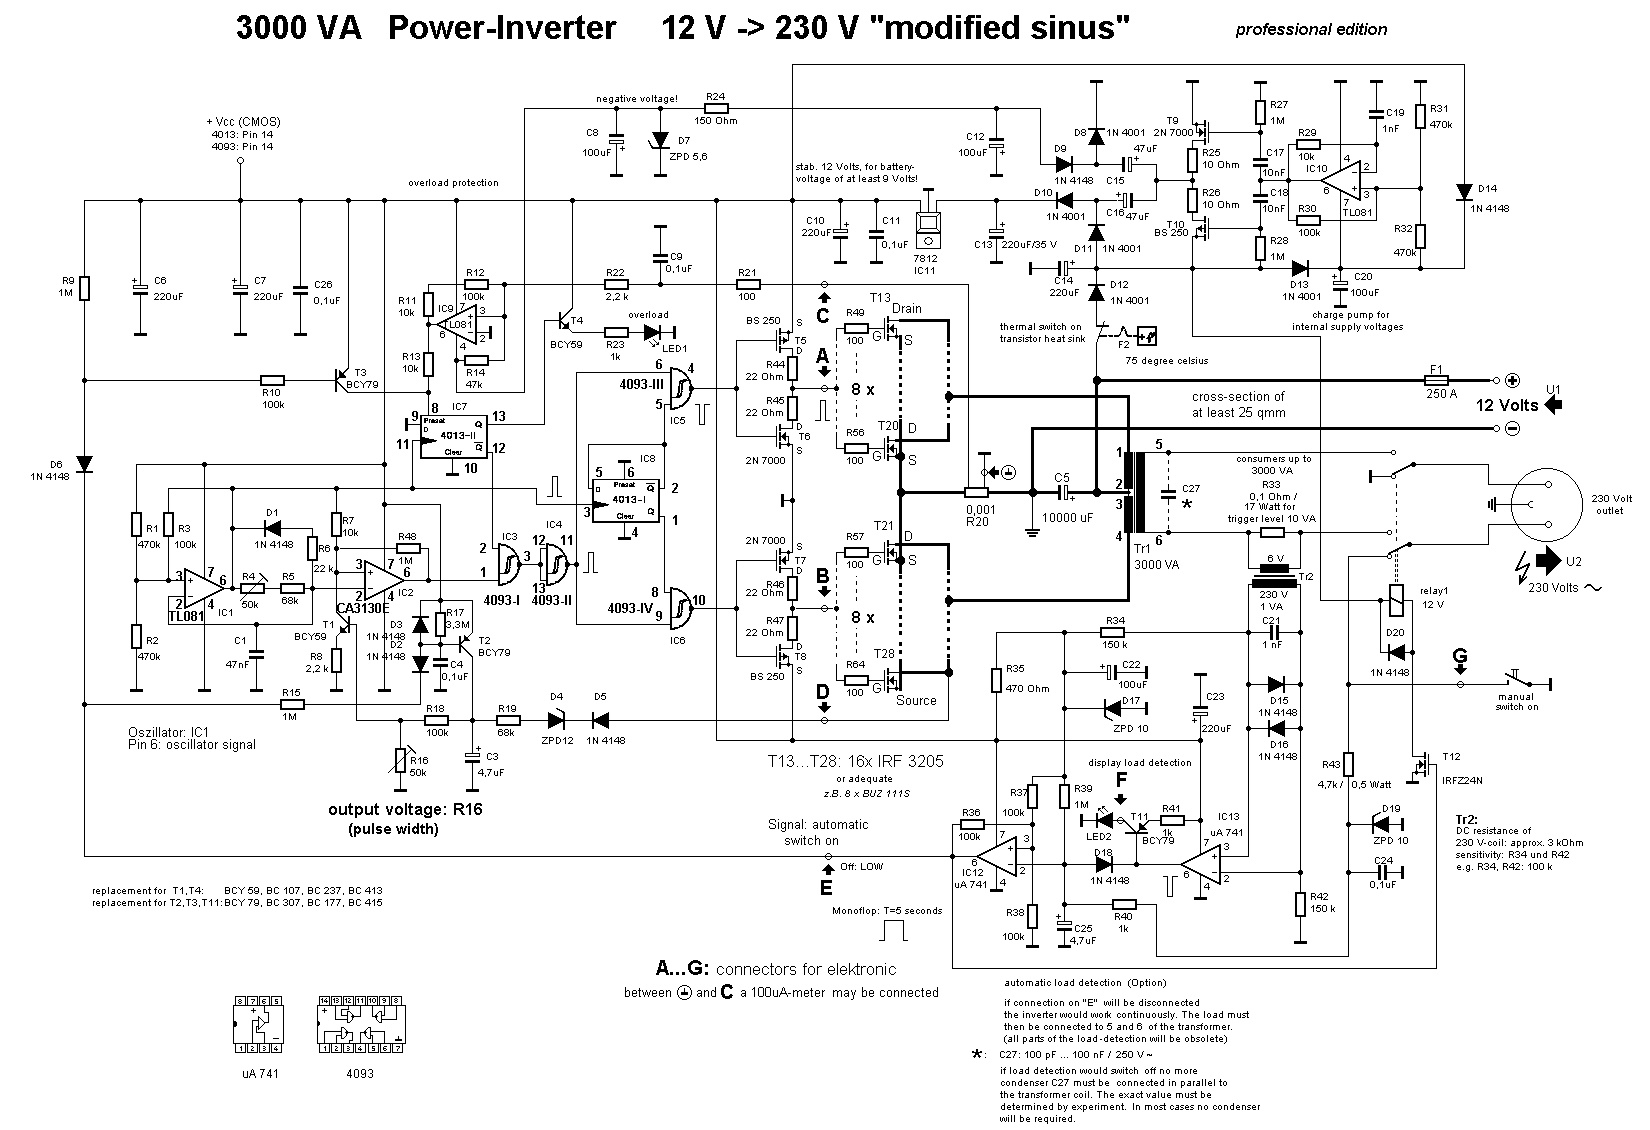 W Power Inverter V To V Inverter Circuit And Products - Circuit diagram of an inverter